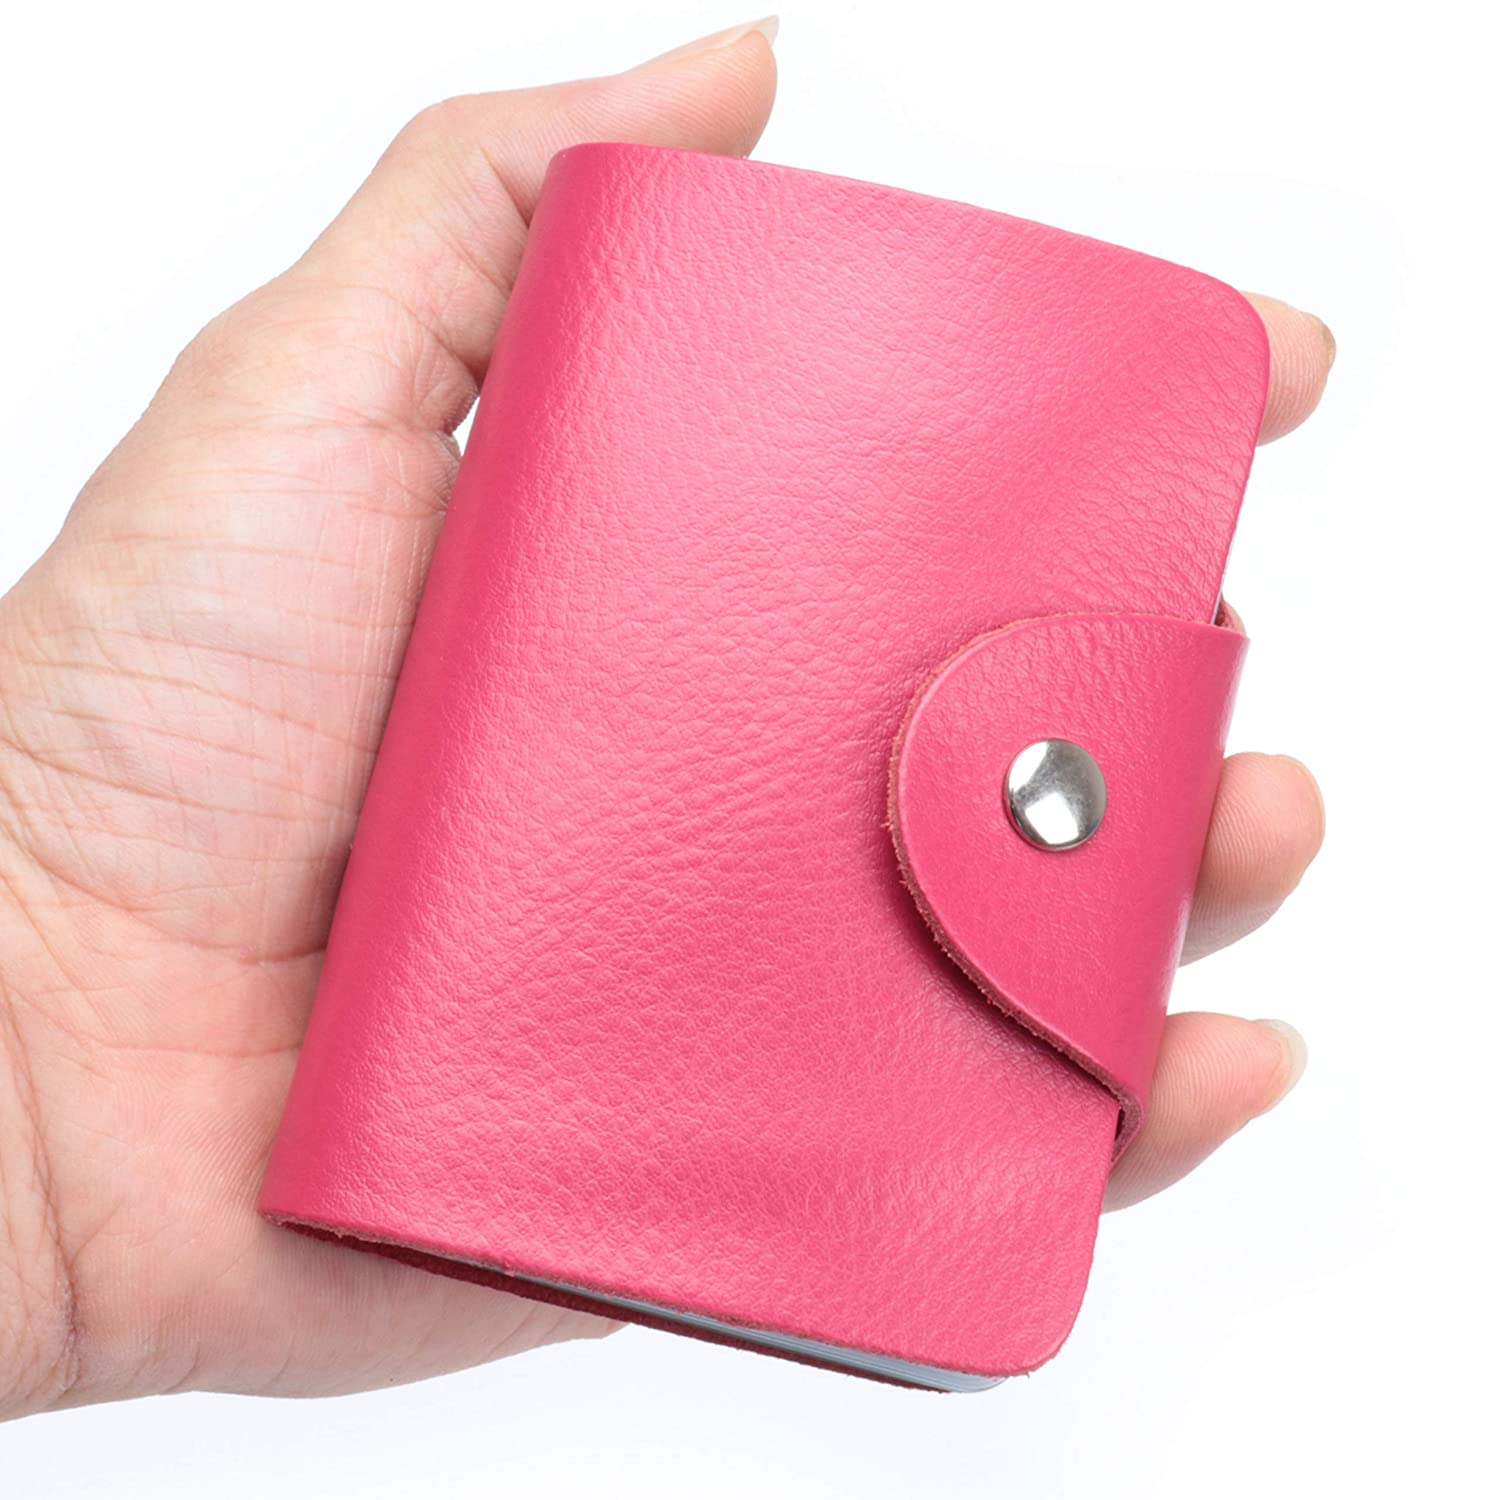 MuLier Soft Leather Case Wallet Bag Holder for 60 Credit Cards Coffee